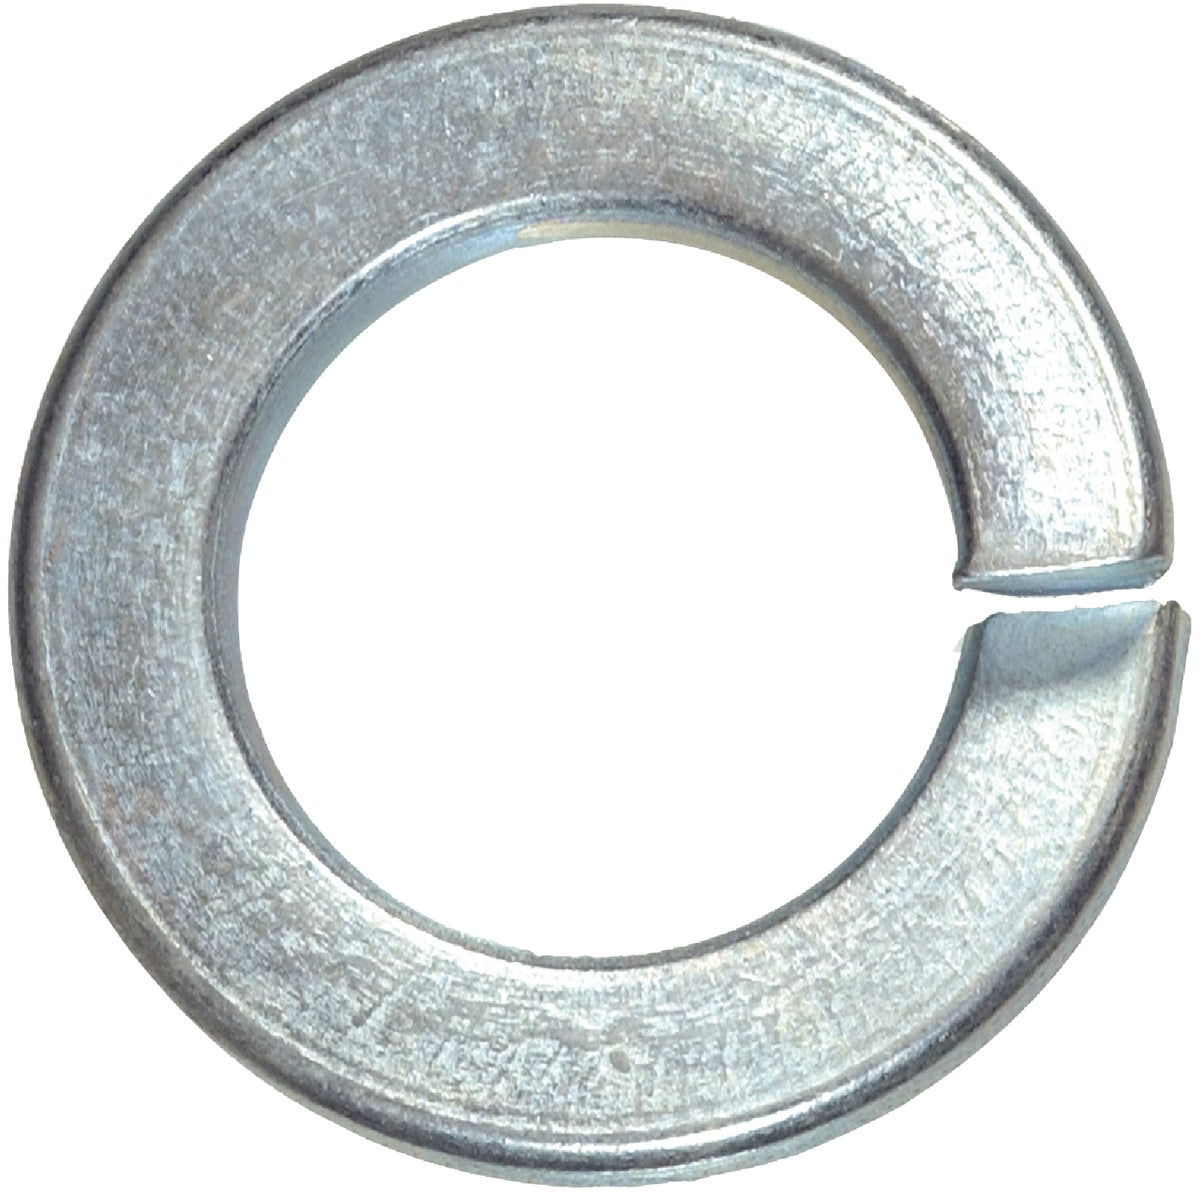 100PC #6 LOCK WASHER